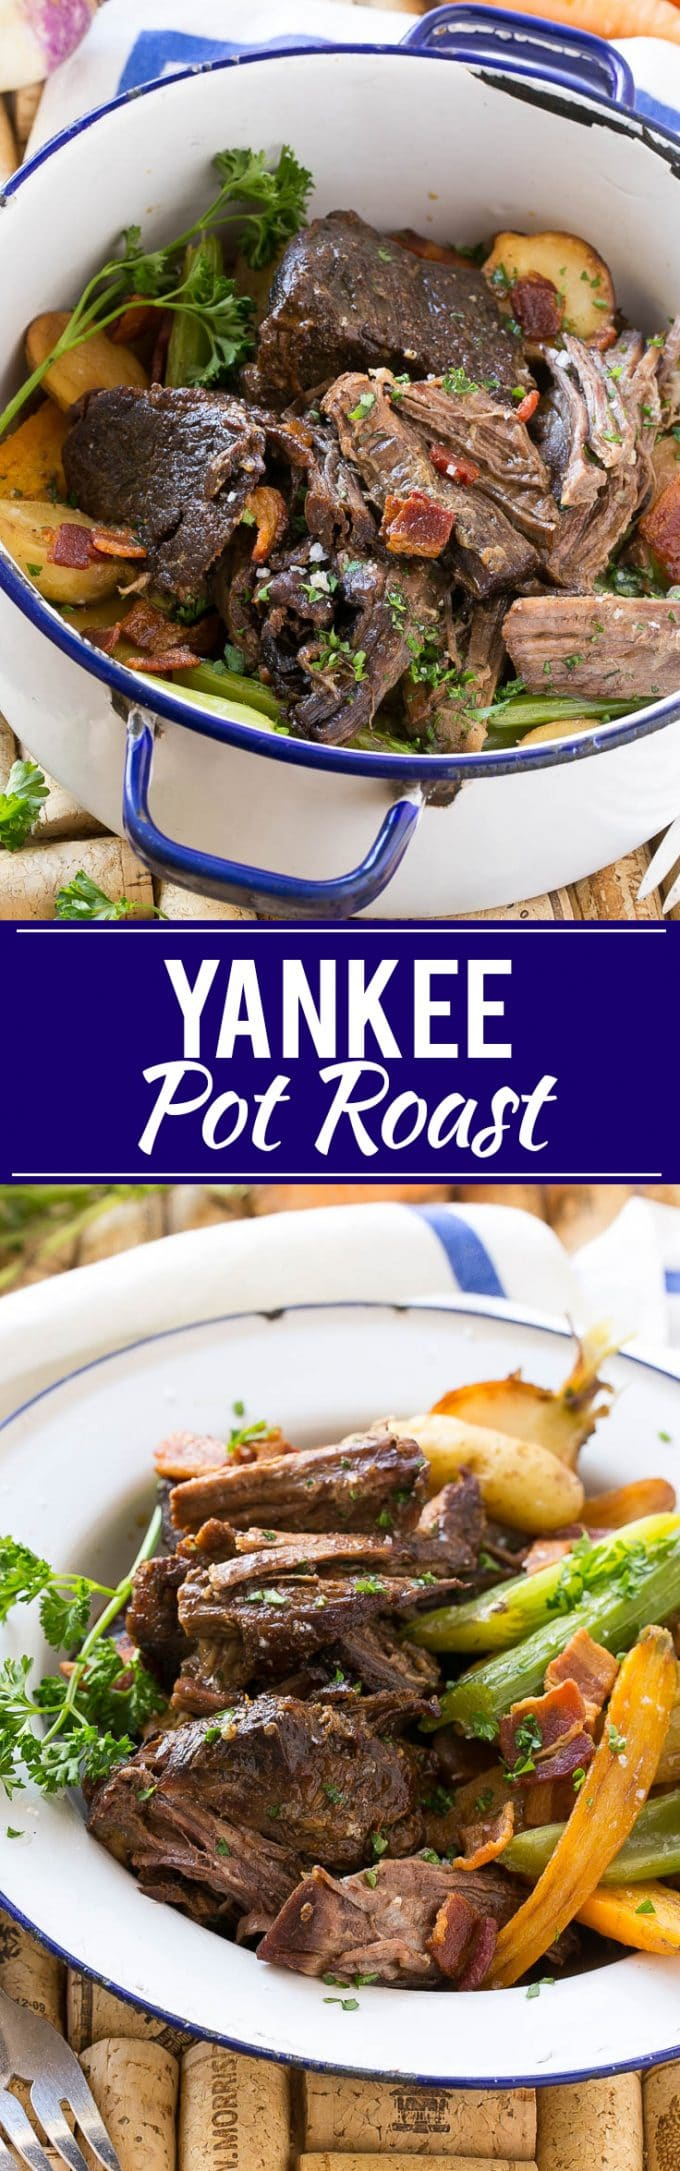 Yankee Pot Roast | Easy Pot Roast #potroast #beef #comfortfood #dinner #dinneratthezoo